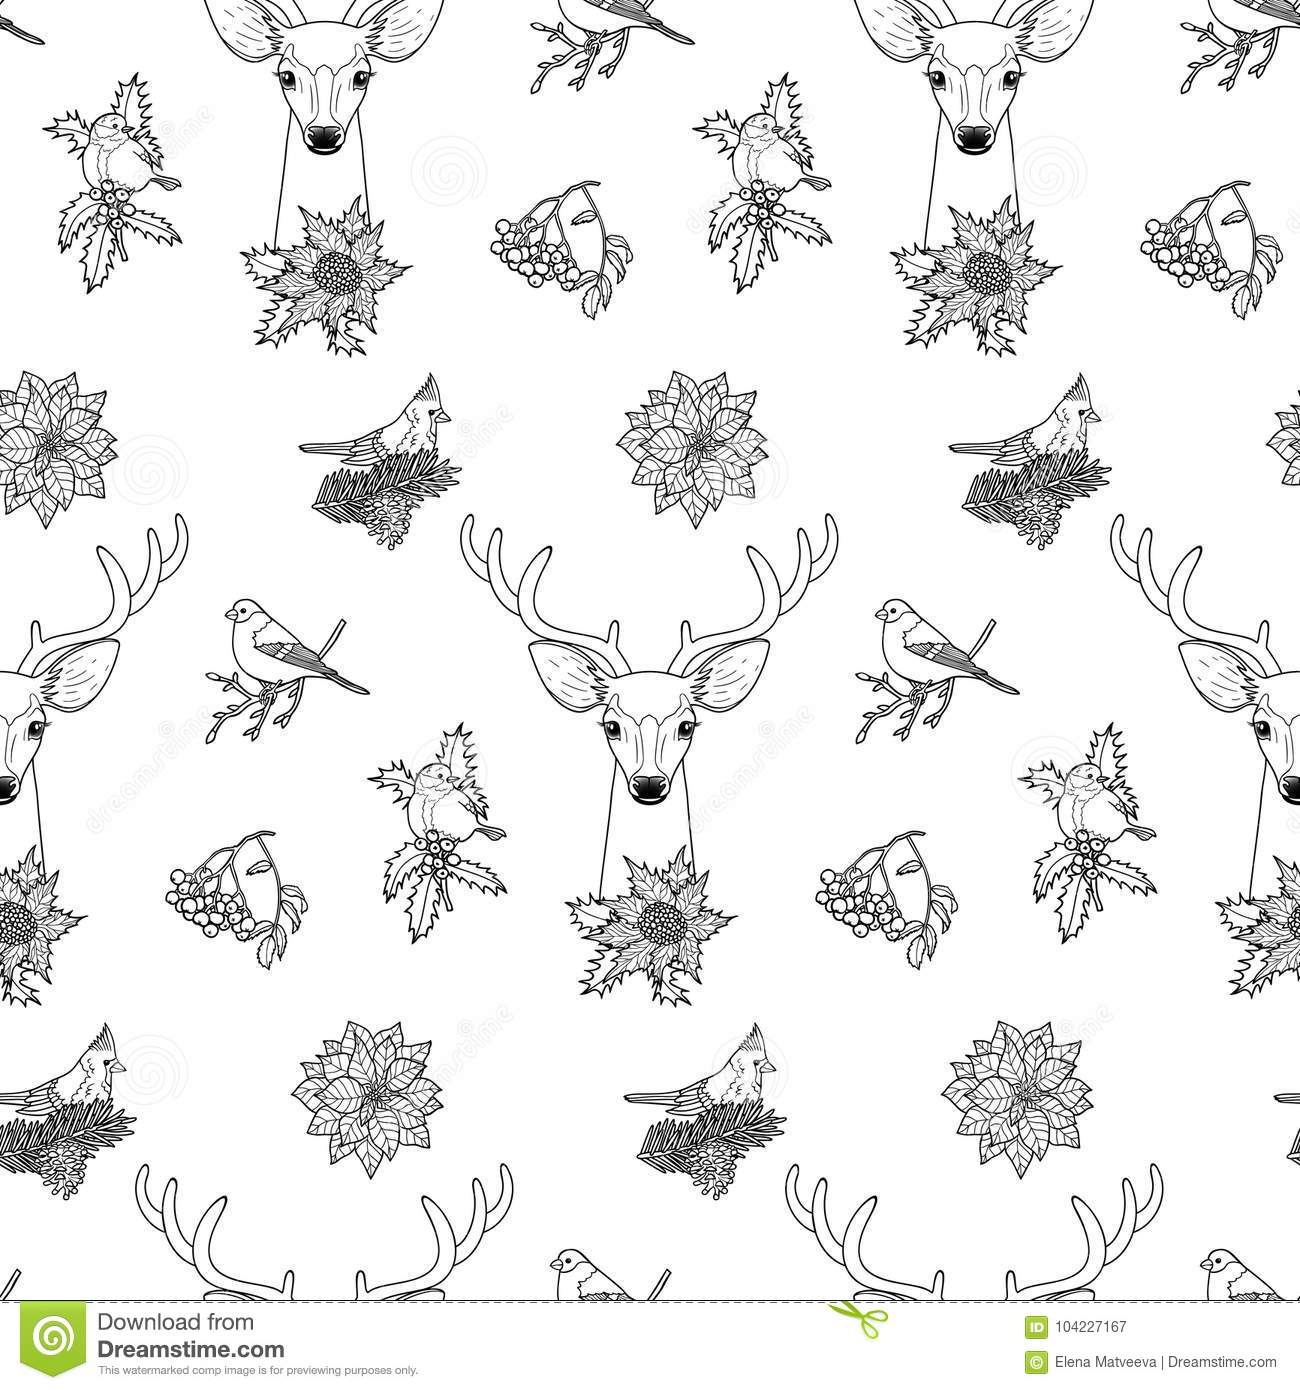 winter plants deer birds seamless pattern nature black white background greeting cards mock ups coloring page covers